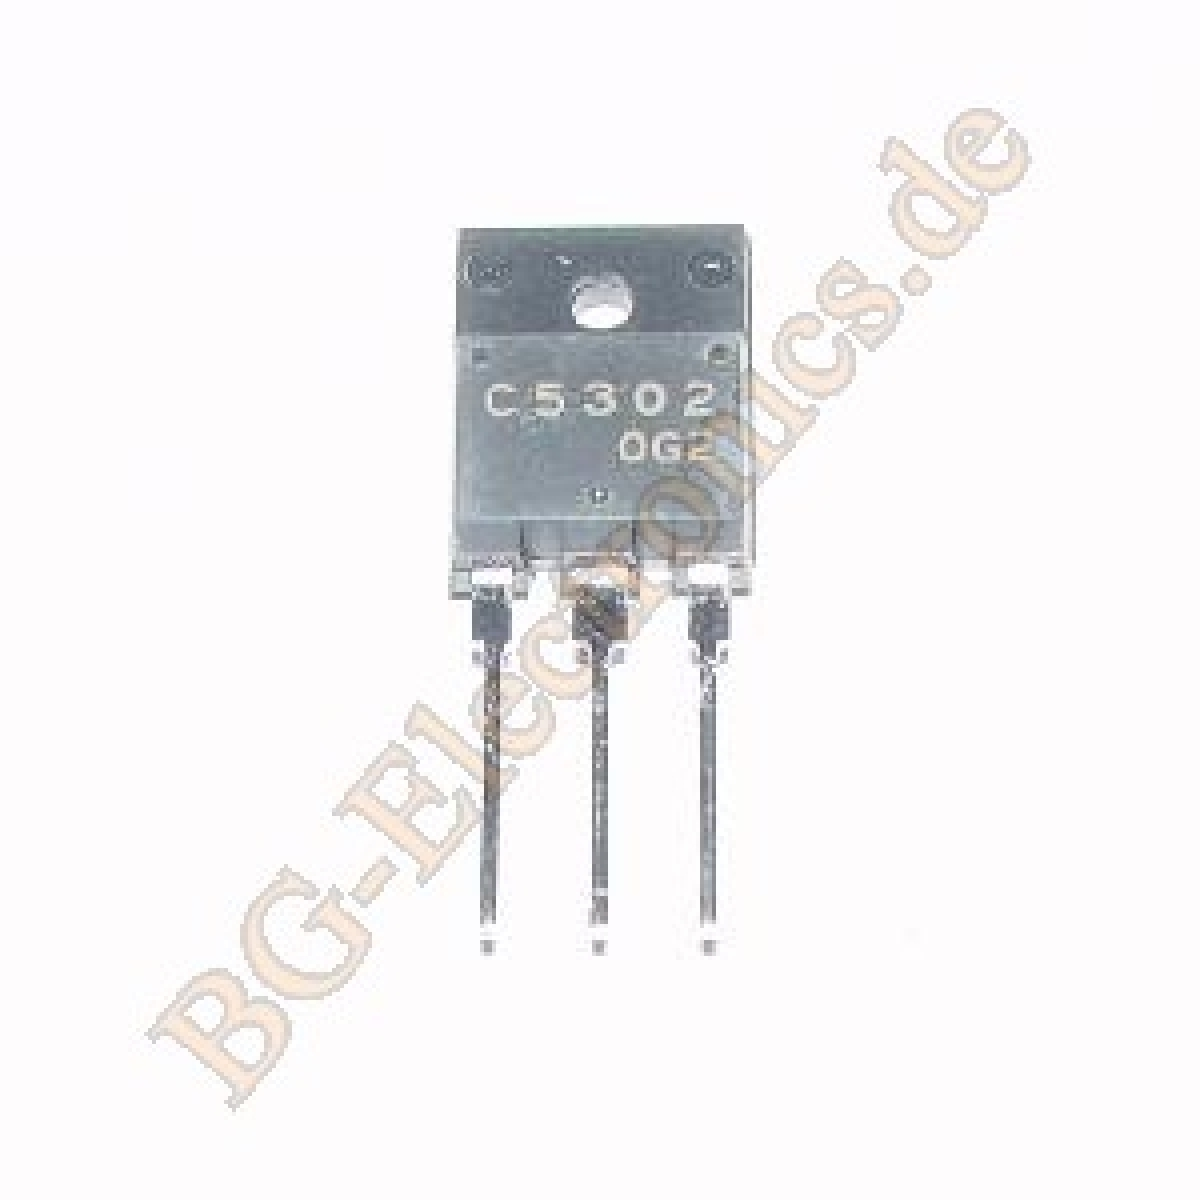 2sc5302 datasheet, equivalent, cross reference search. Transistor.